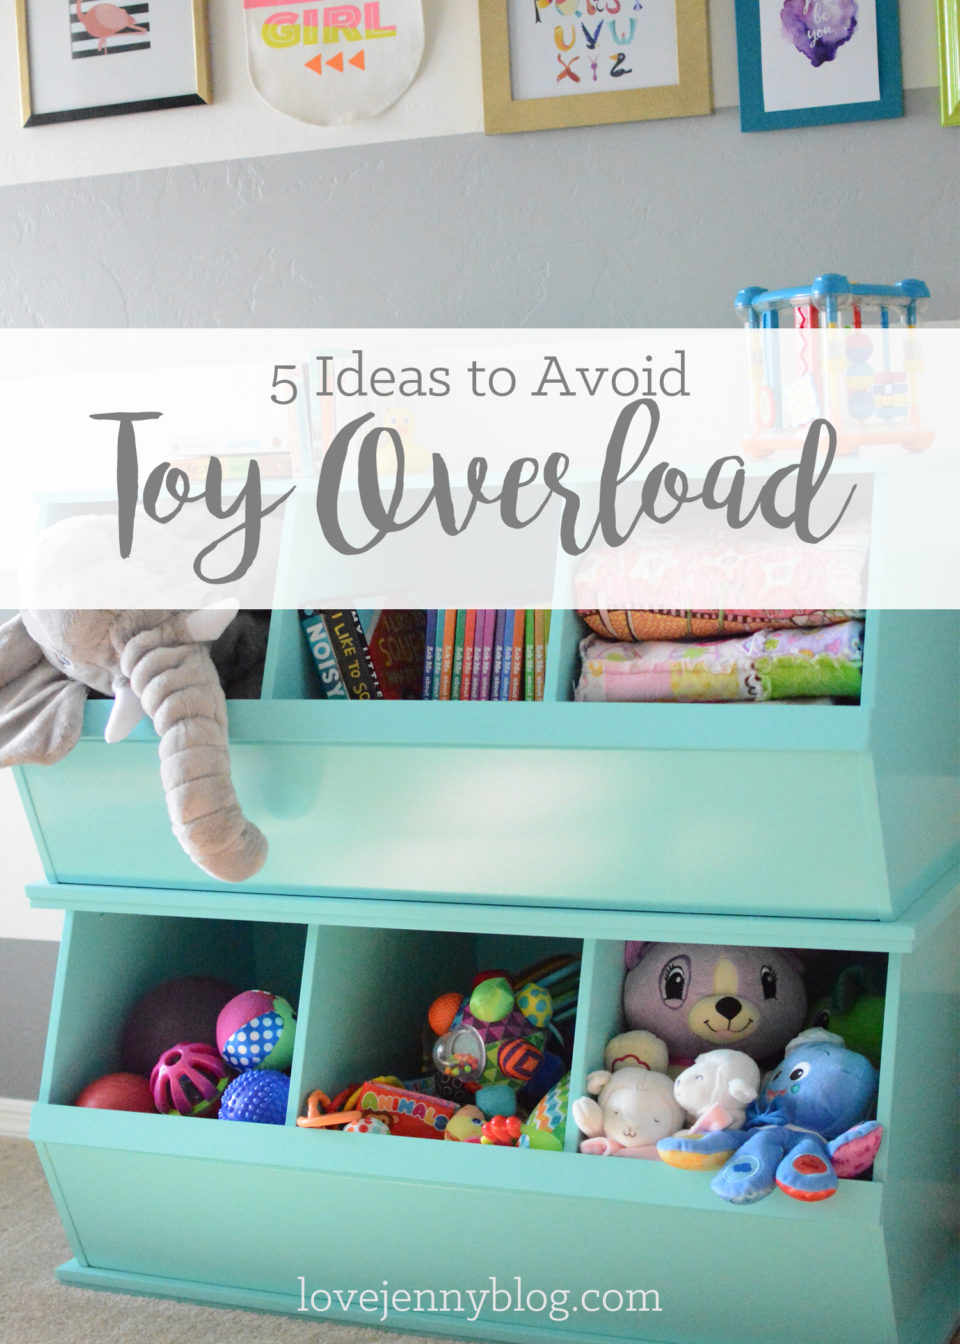 5 Ideas to Avoid Toy Overload {Guest Post}